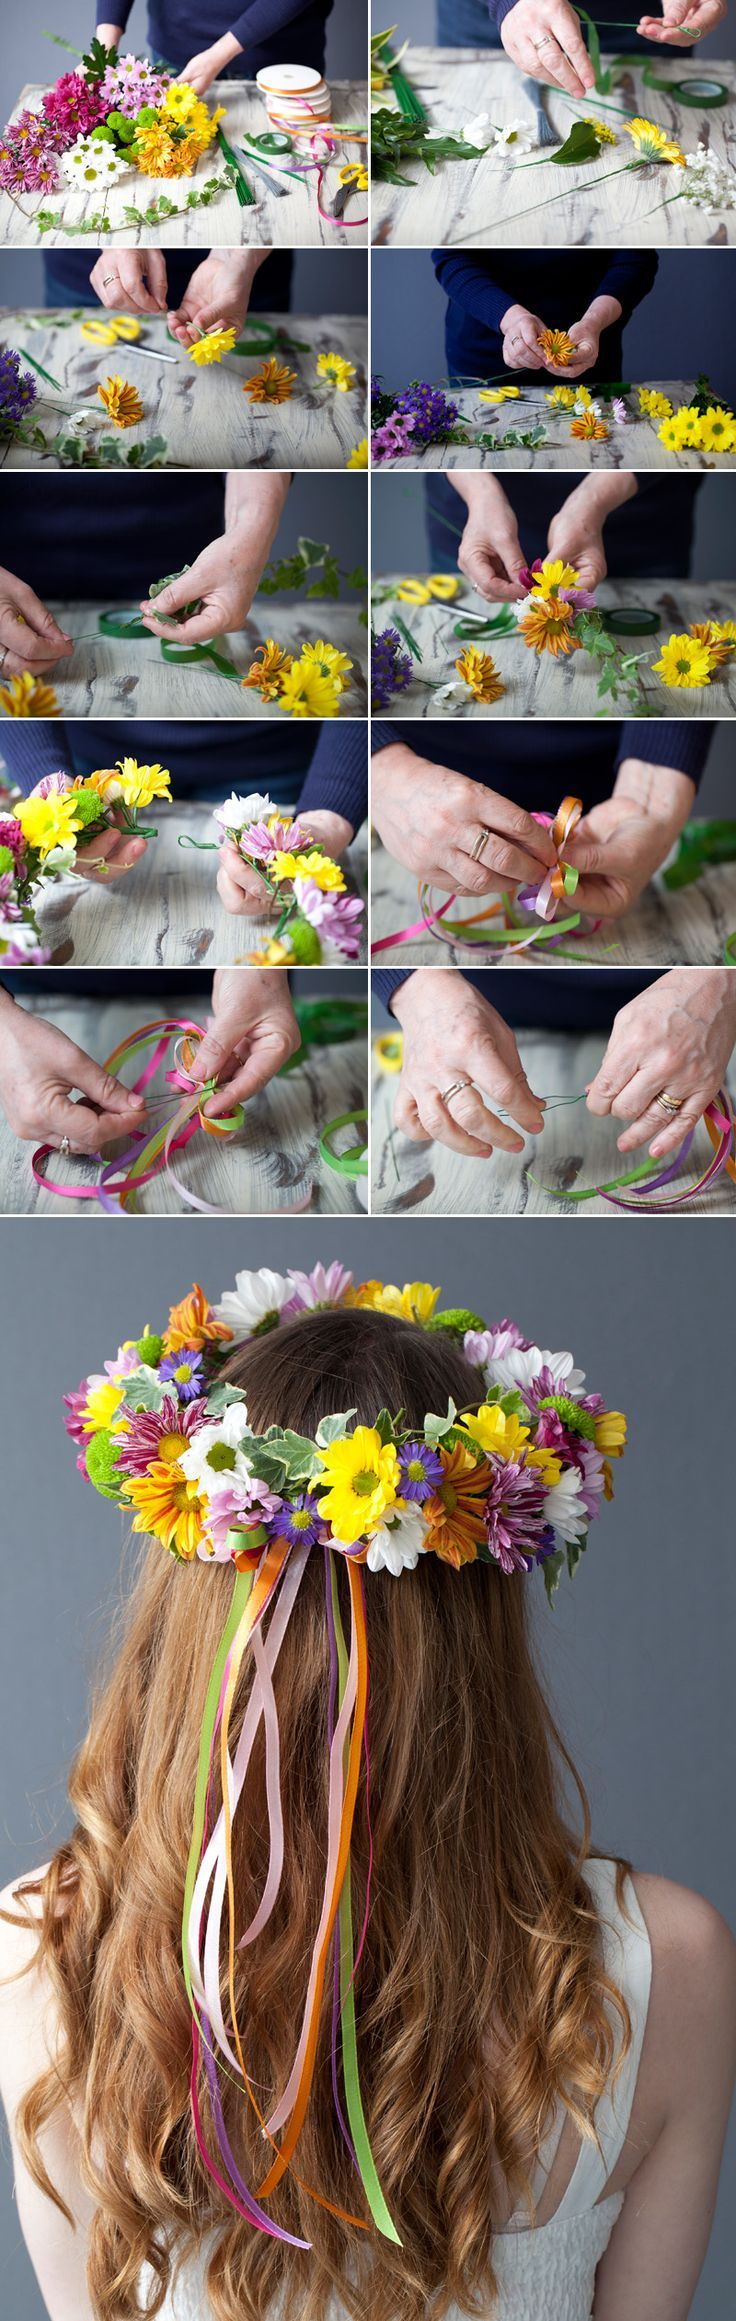 How To Make A Vibrant Floral Head Crown Pinterest Beltane